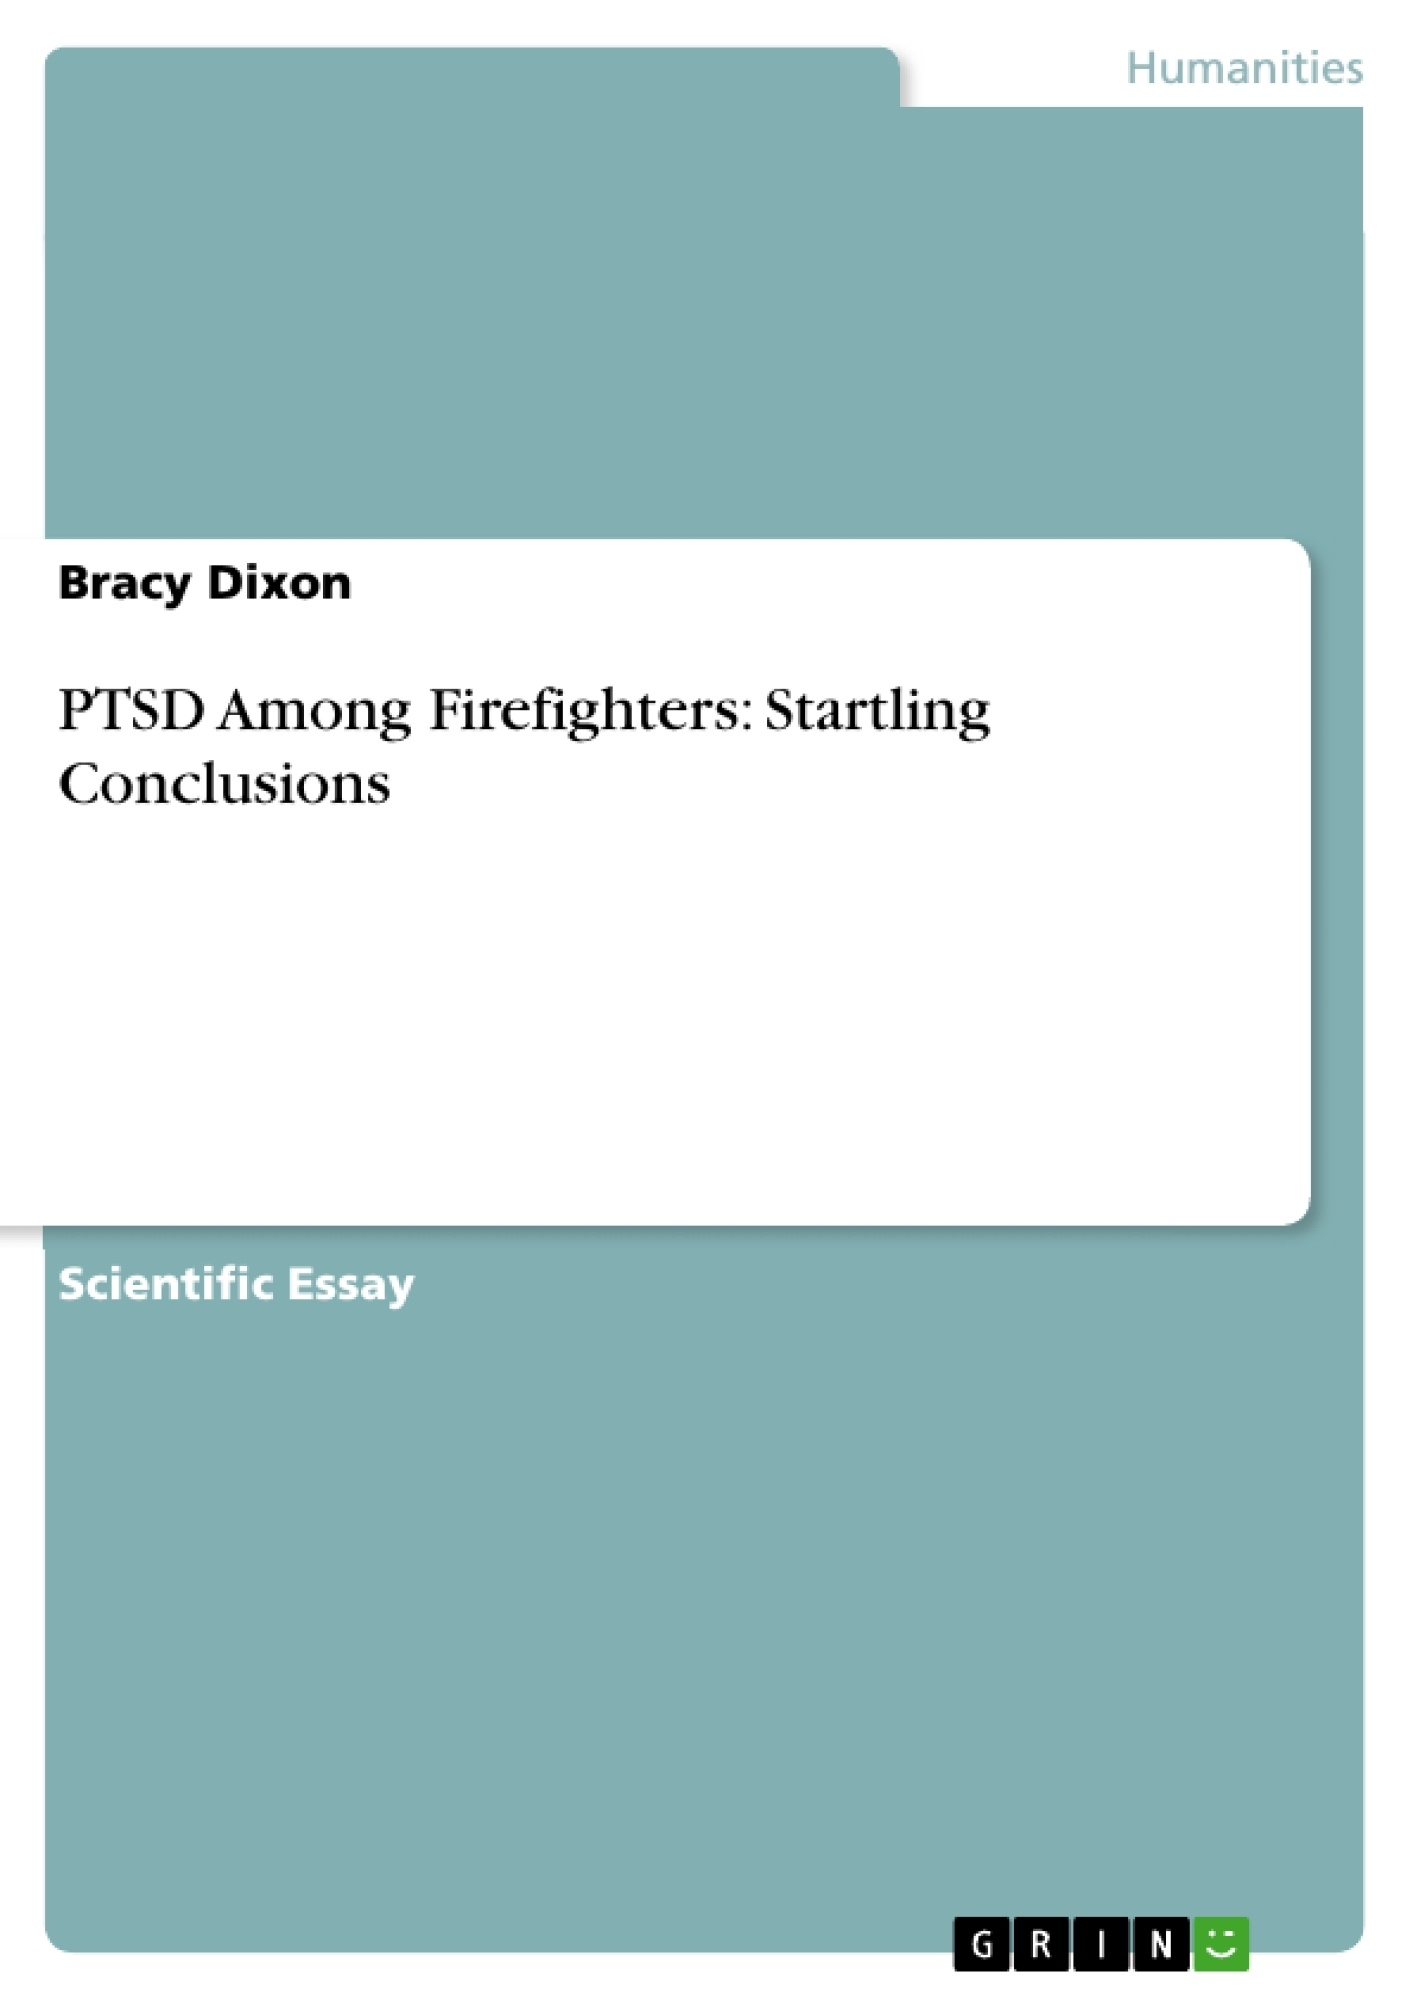 Title: PTSD Among Firefighters: Startling Conclusions